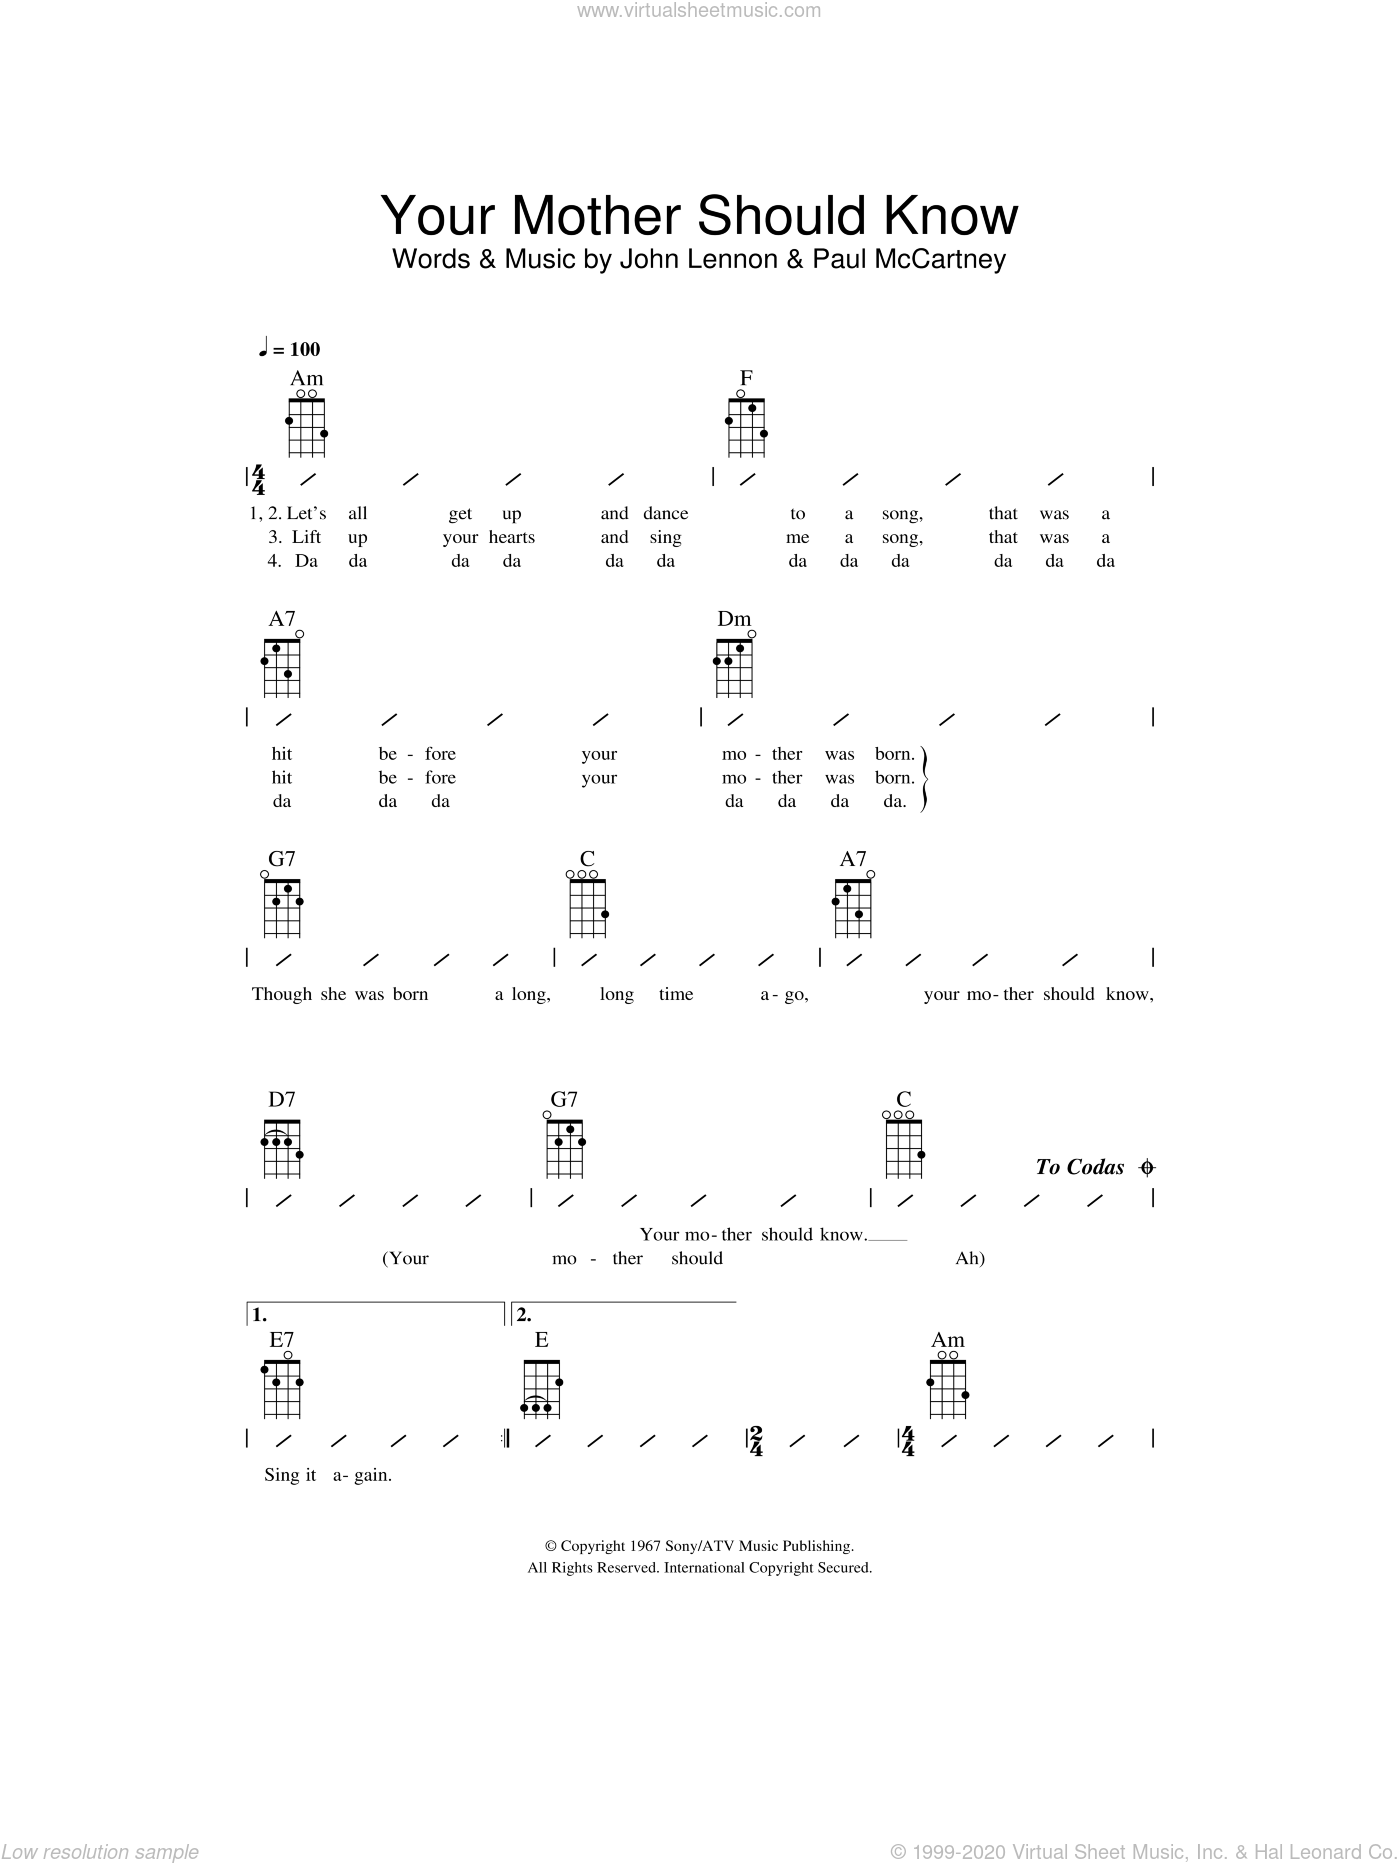 Your Mother Should Know sheet music for ukulele (chords) by John Lennon